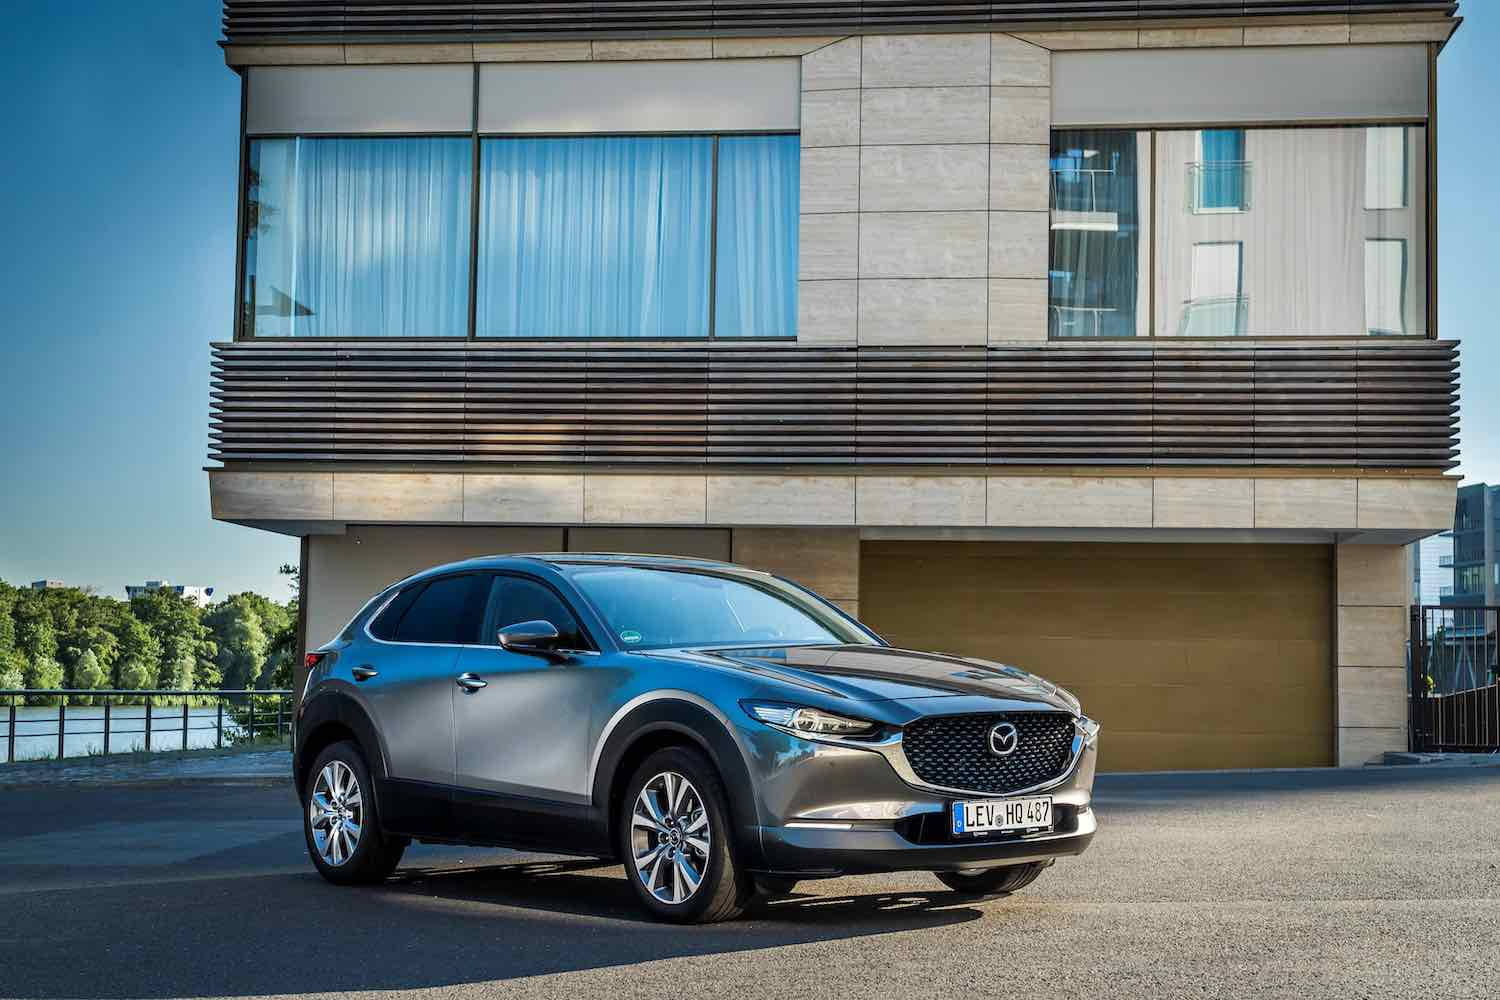 Car News | Mazda to offer test drives at home | CompleteCar.ie